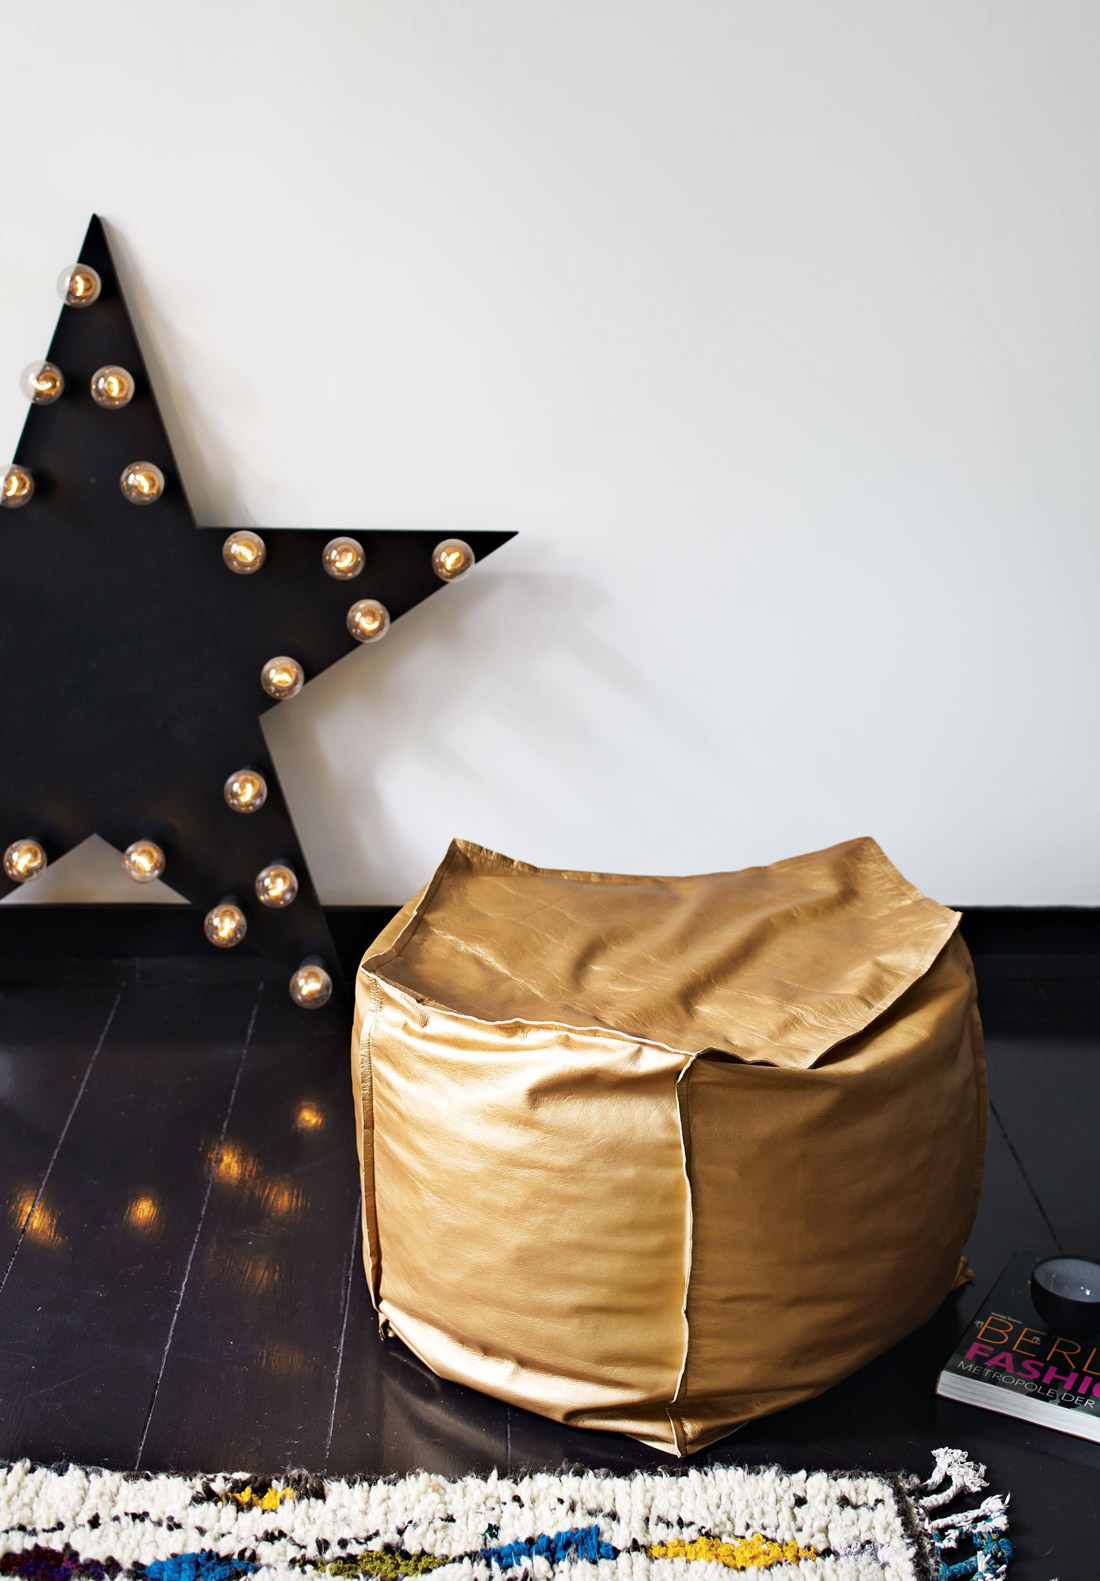 Bean Bag, Star Lighting, Apartment Renovation in Berlin, Germany